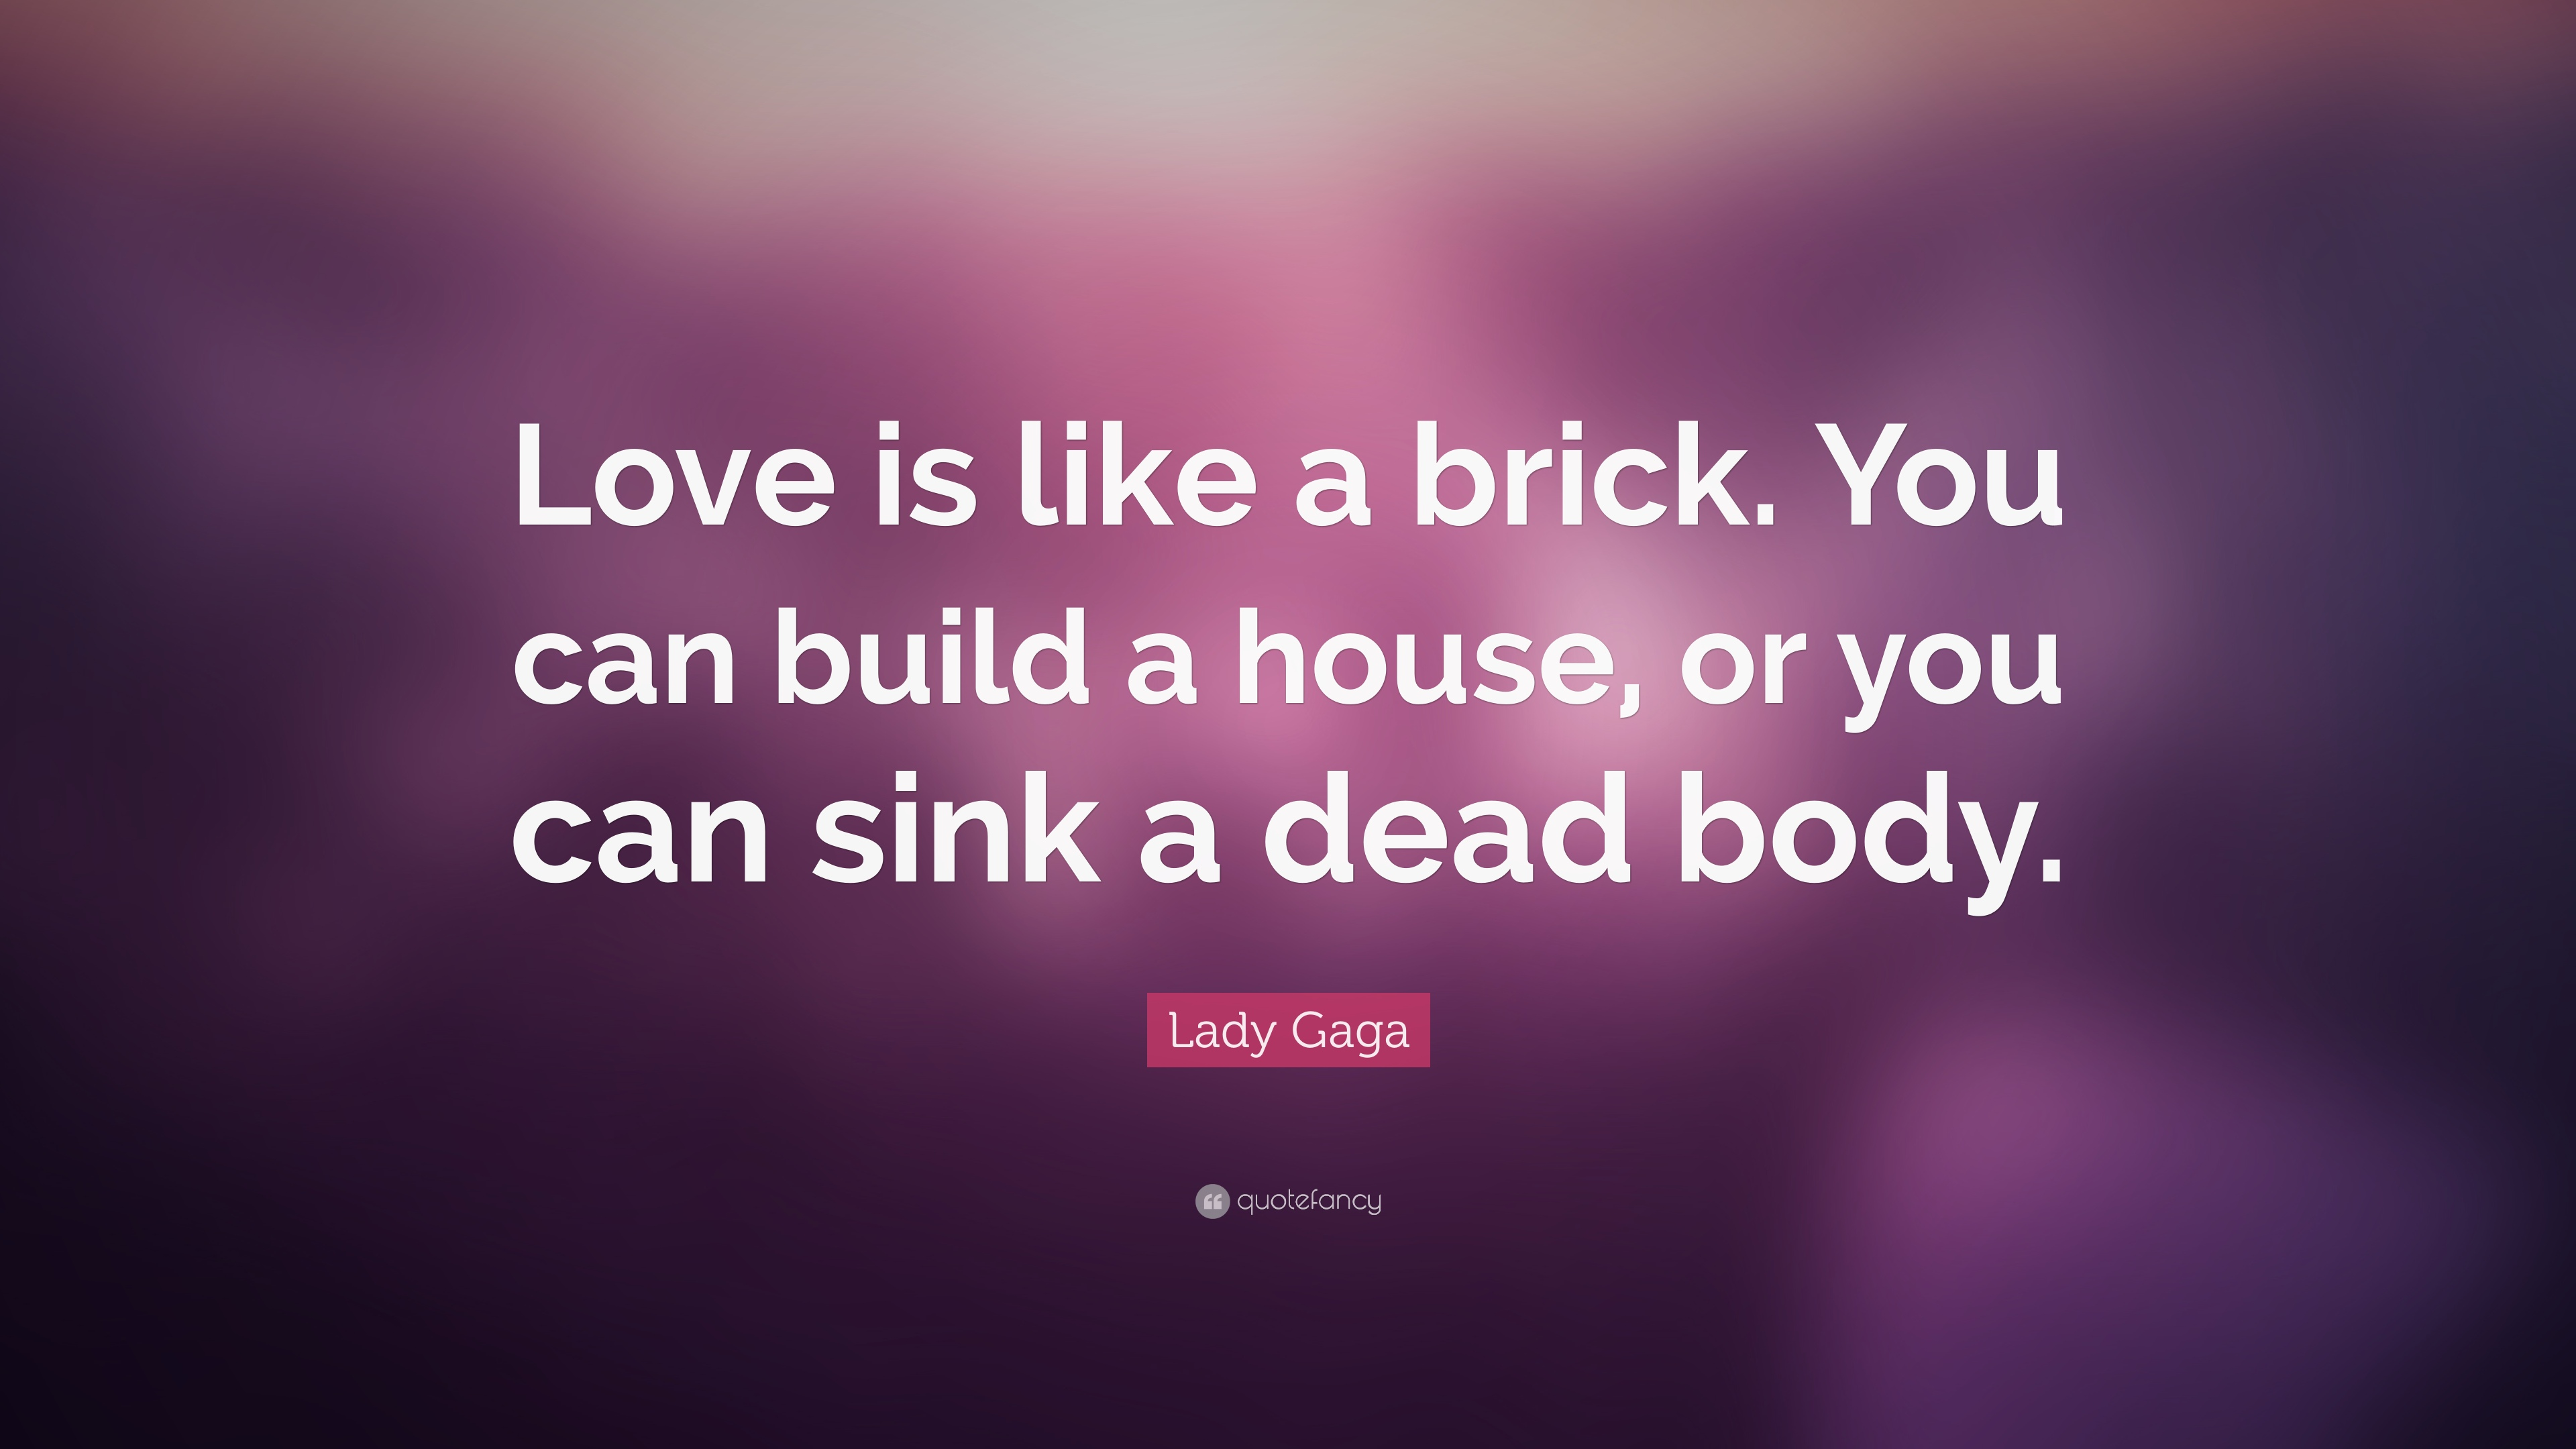 Lady Gaga Quote: U201cLove Is Like A Brick. You Can Build A House